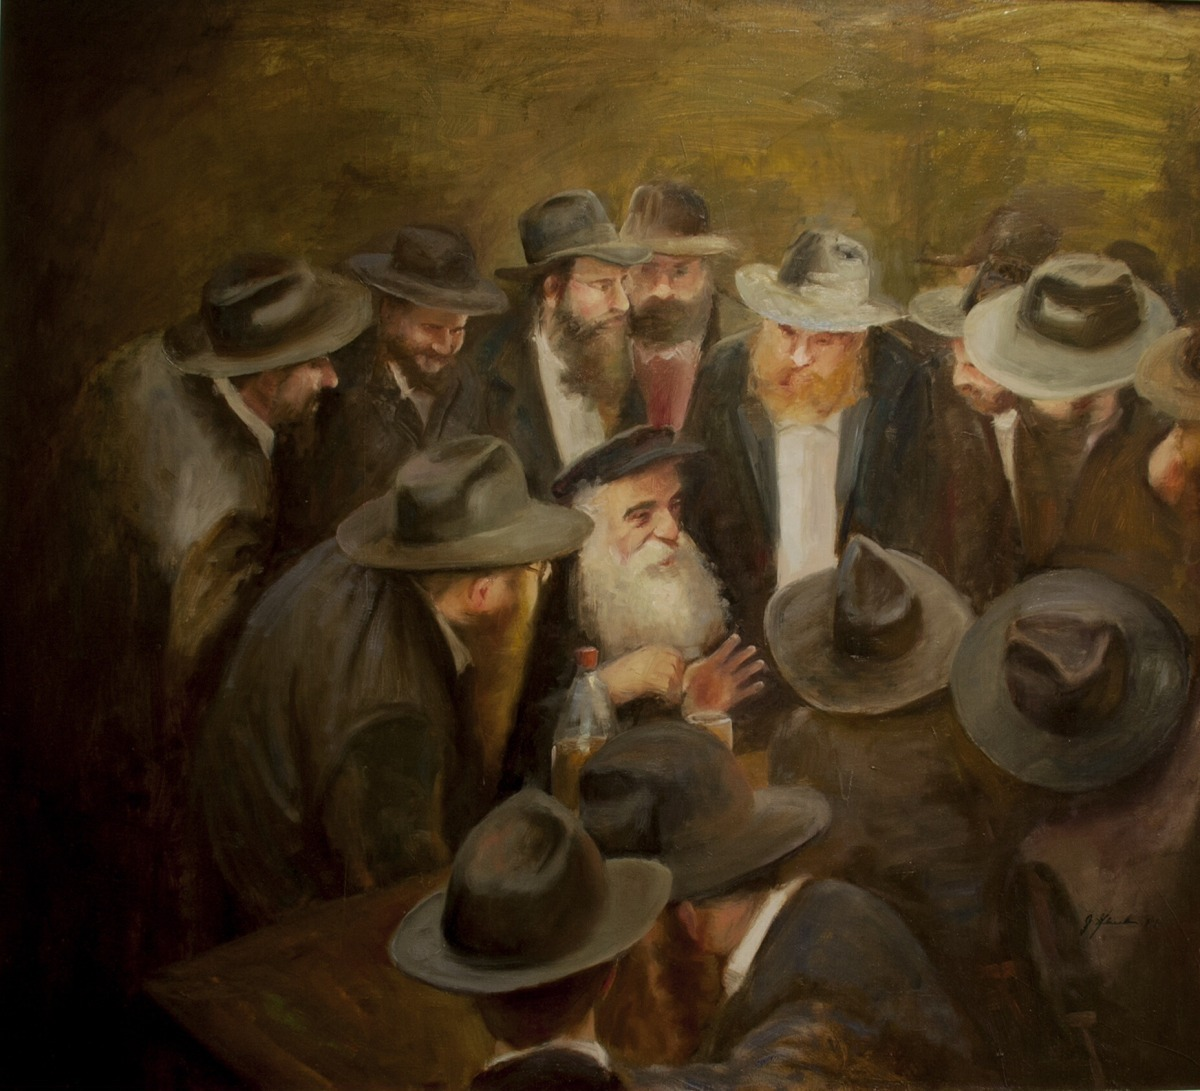 painter jewish singles Search for local jewish singles search pictures and profiles of jewish singles near you right now discover how online dating sites make finding singles in the united states, canada, and all over the world simple, safe and fun.